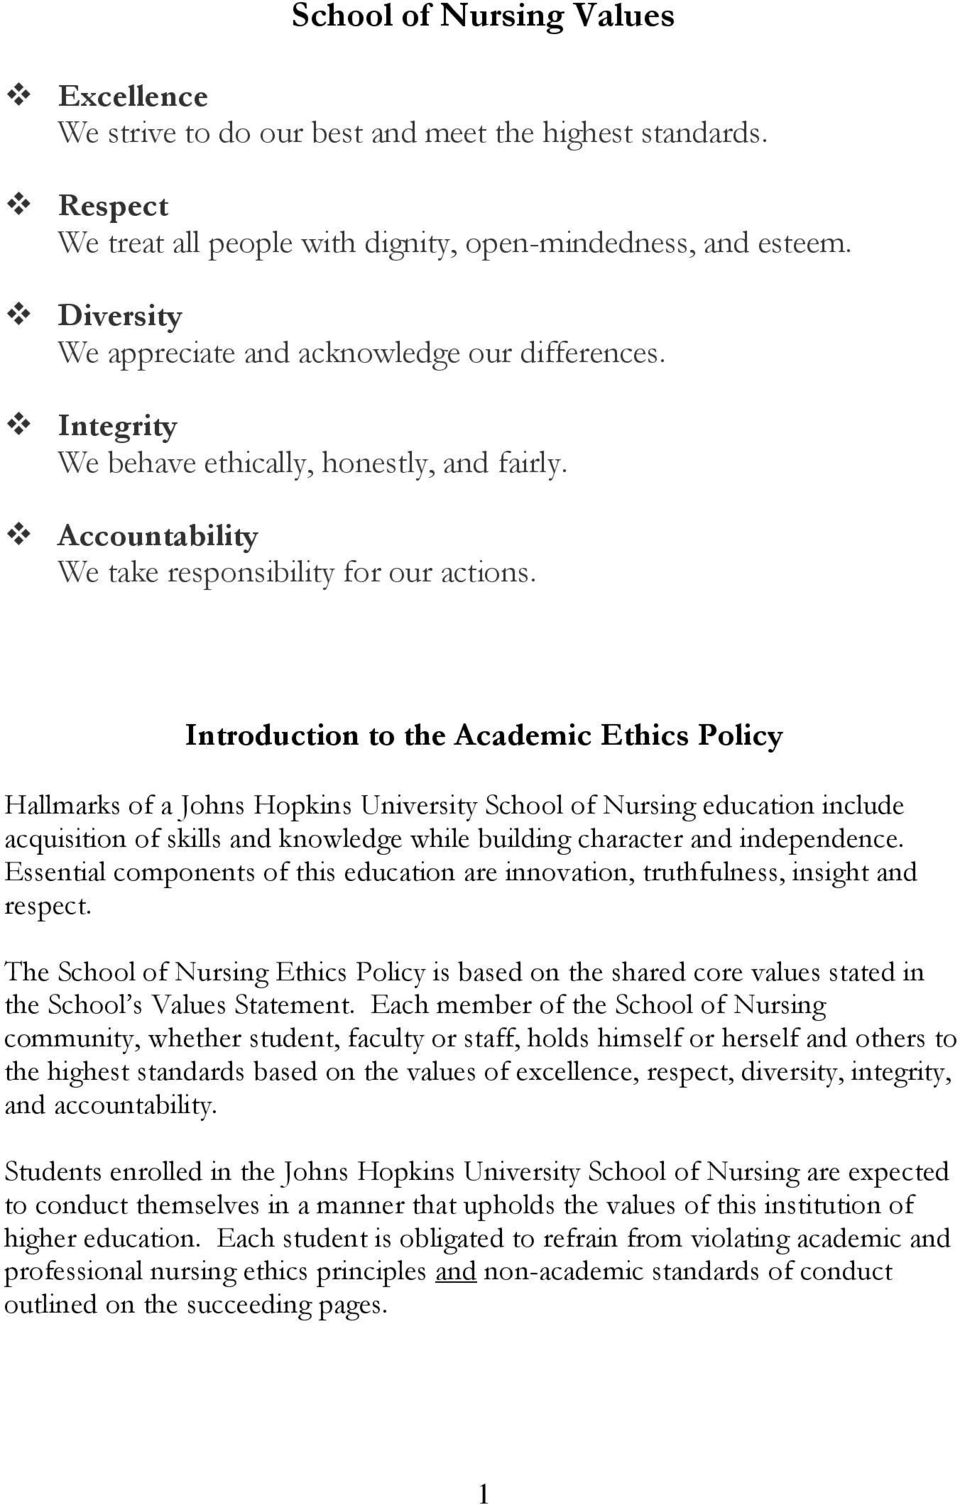 Introduction to the Academic Ethics Policy Hallmarks of a Johns Hopkins University School of Nursing education include acquisition of skills and knowledge while building character and independence.